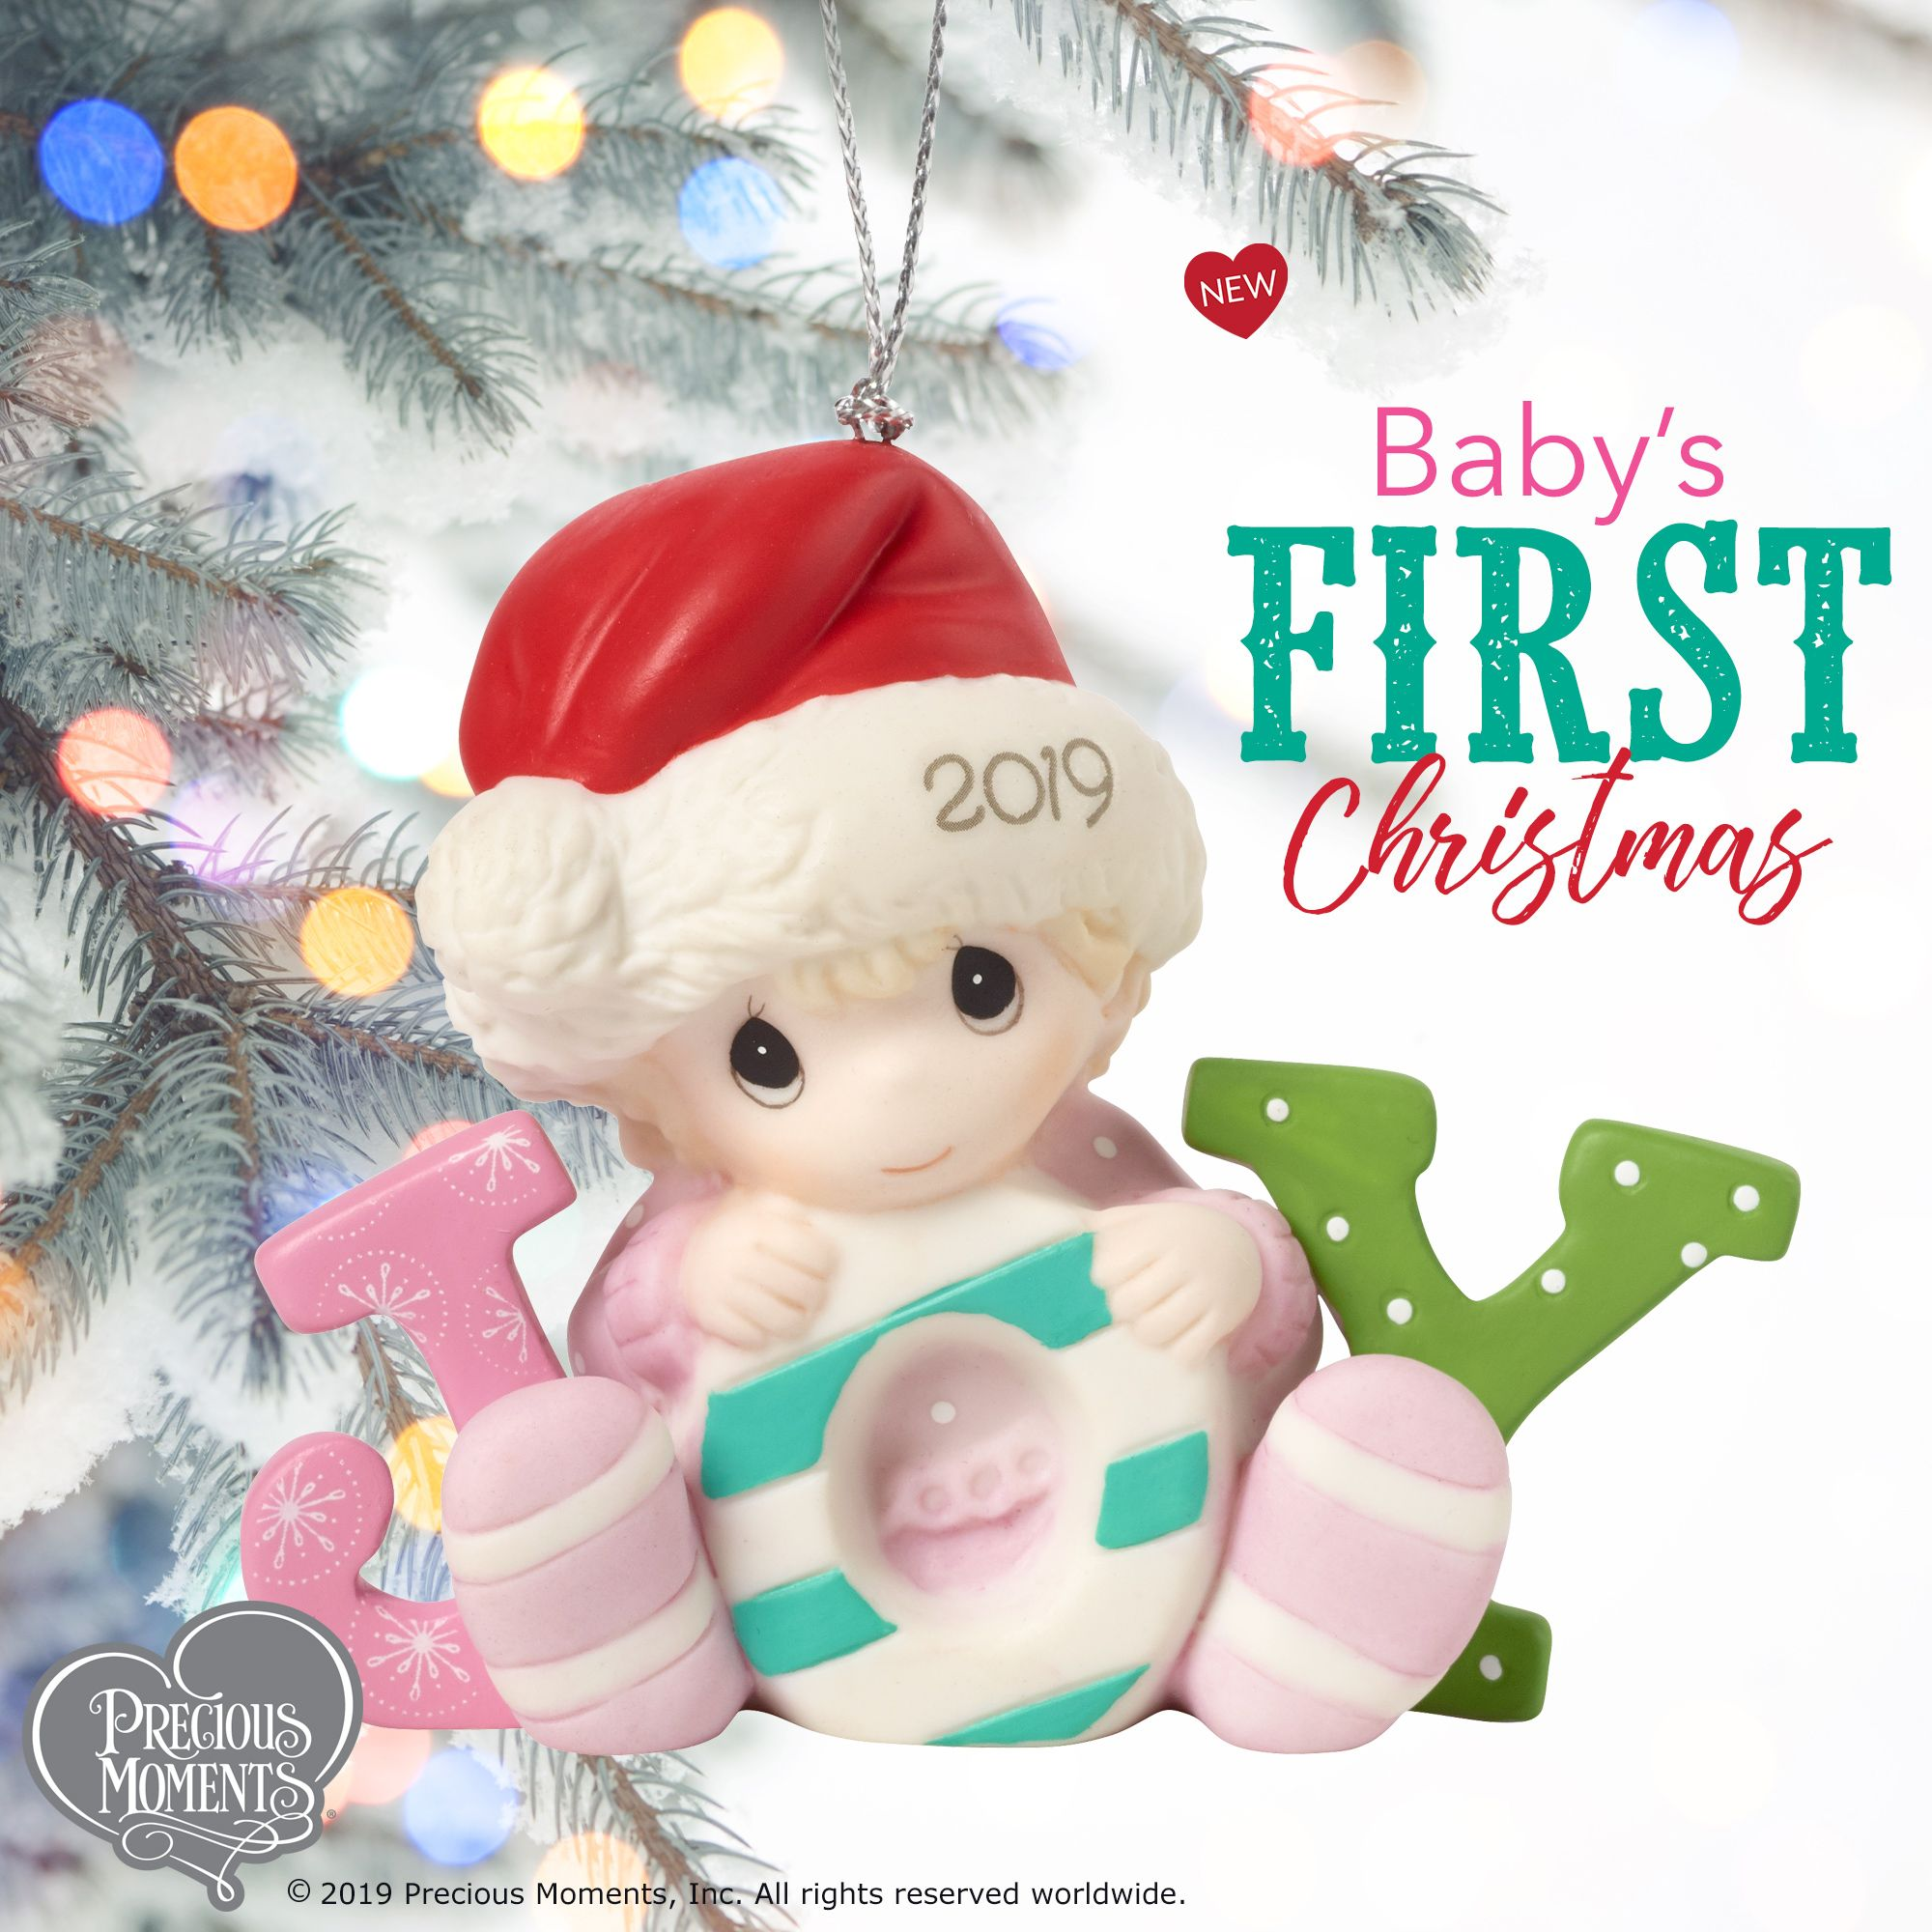 Baby S First Christmas 2019 Dated Porcelain Ornament Girl Thoughtful Christmas Gifts First Christmas Ornament Gift Bows